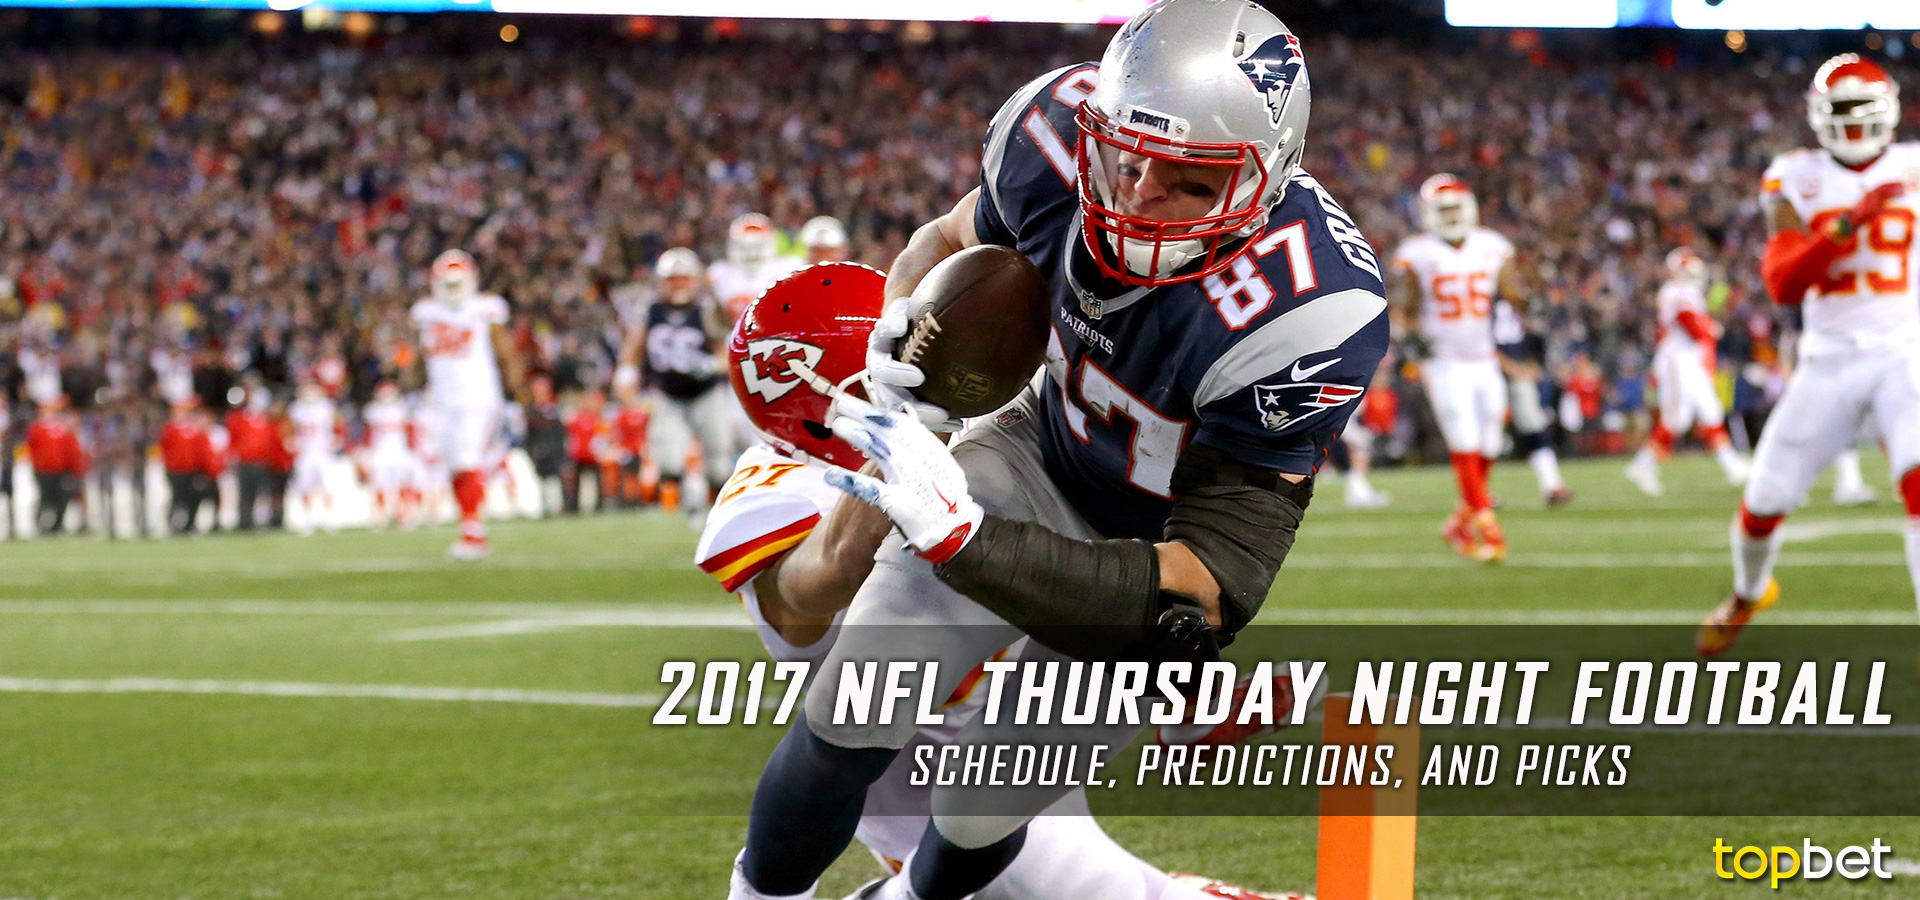 2017 NFL Thursday Night Football Schedule, Picks and